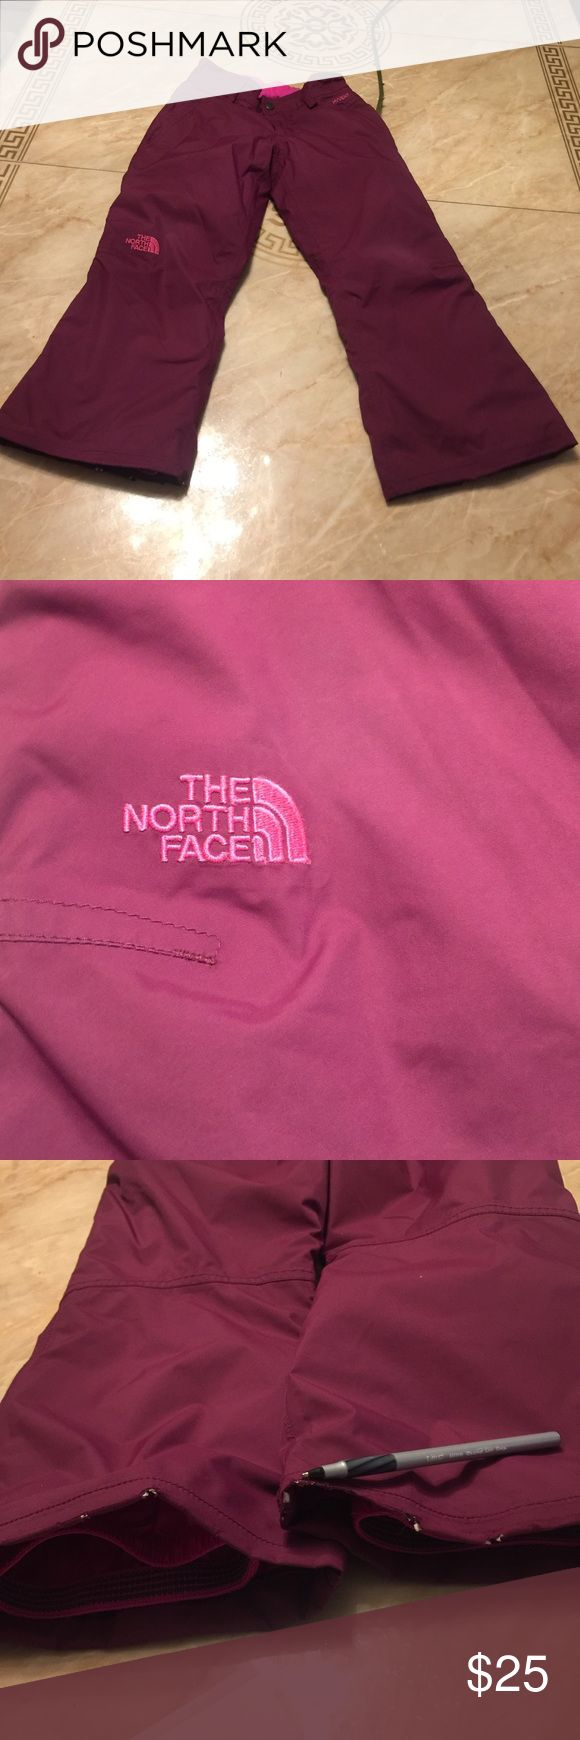 THE NORTH FACE GIRL Size (7/8) Visual signs of wear. The end part of the pants have minimal visual signs of damage  color Burgundy pink The North Face Bottoms Sweatpants & Joggers